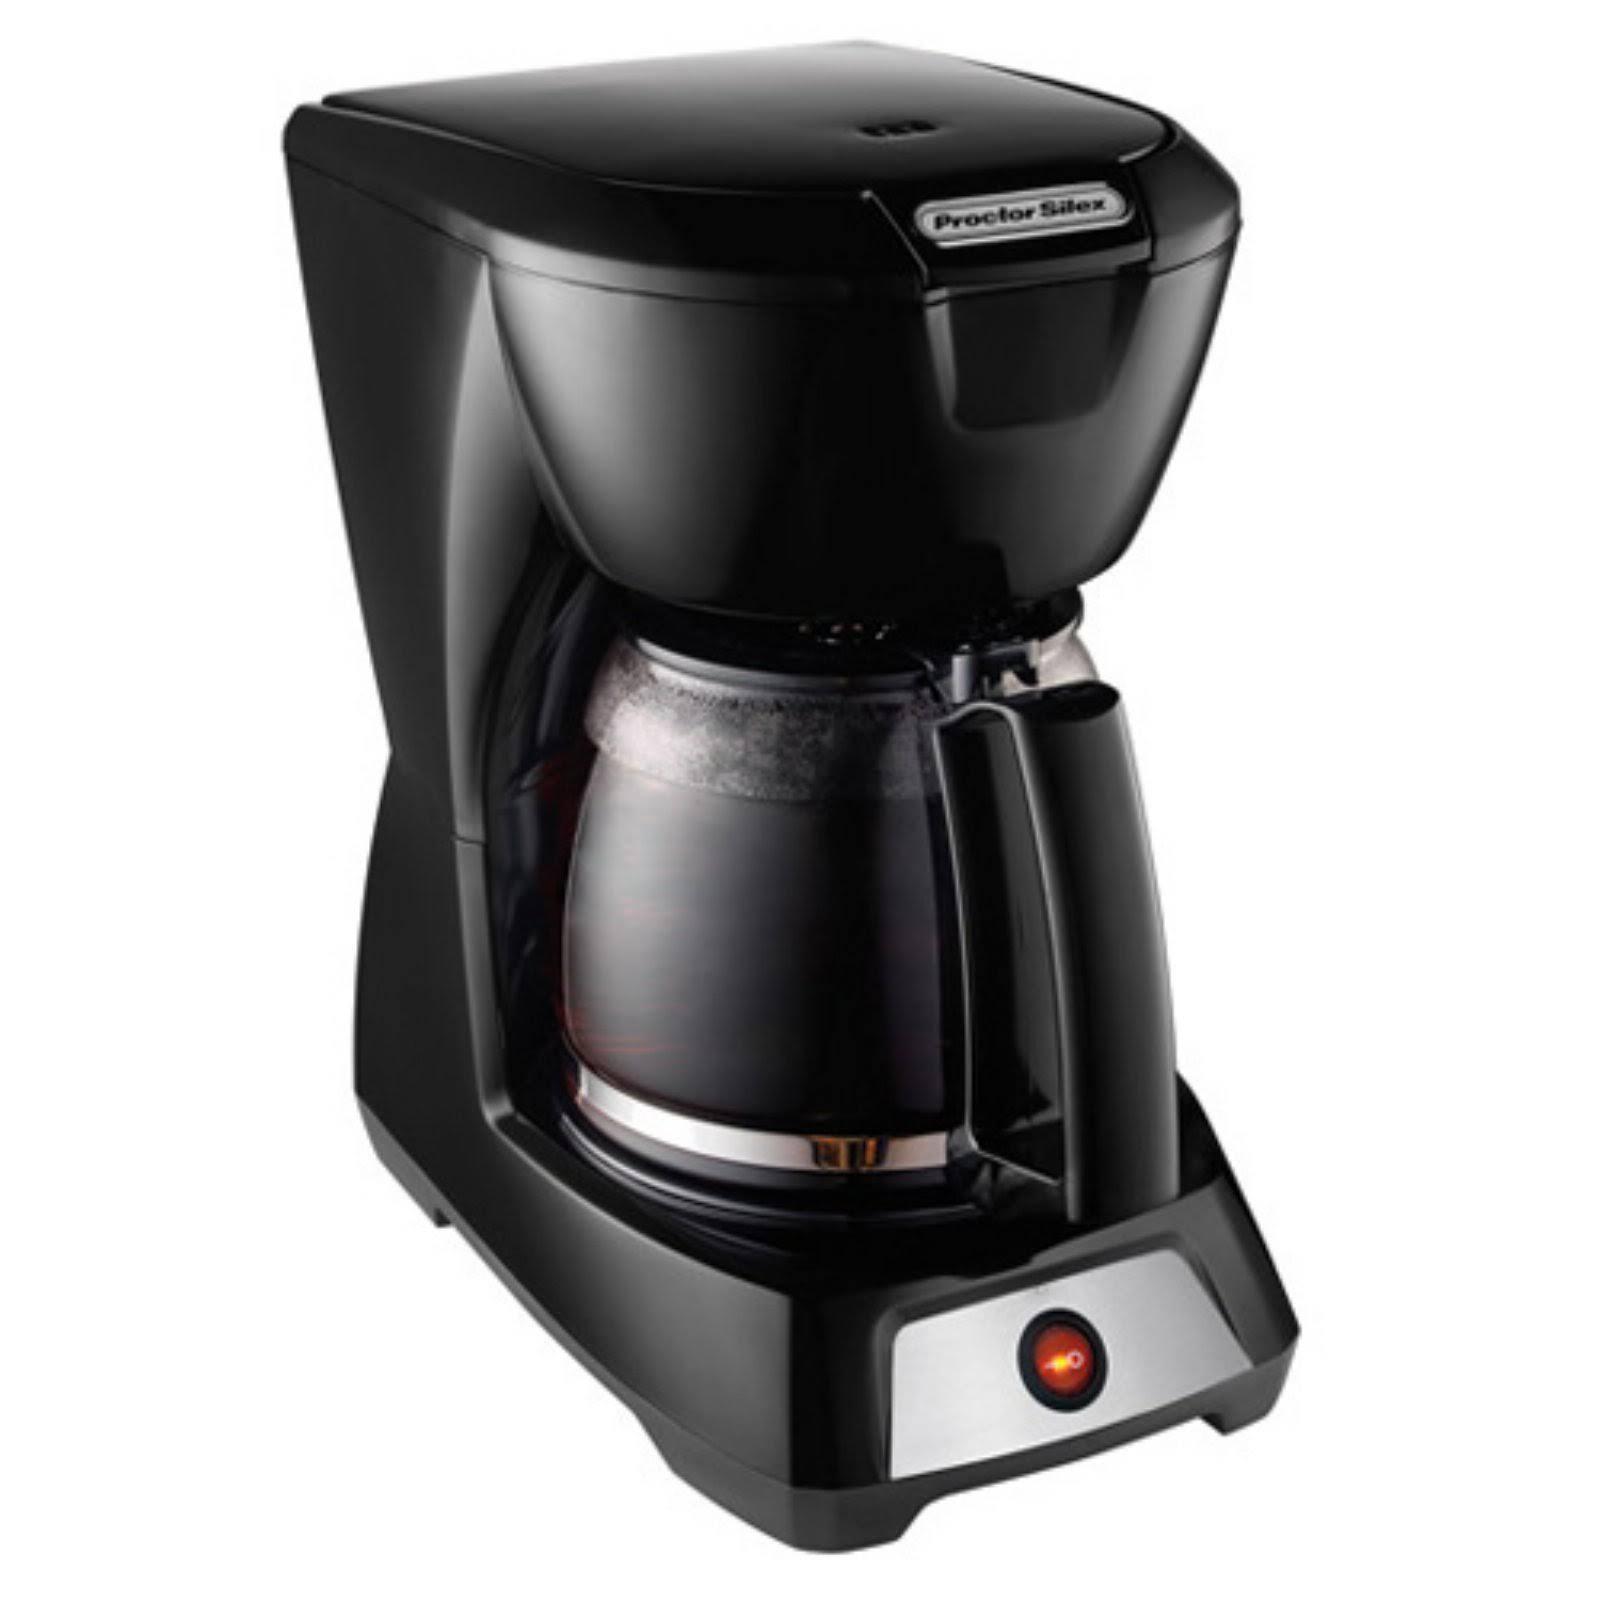 Proctor Silex 43602 12-Cup Coffee Maker